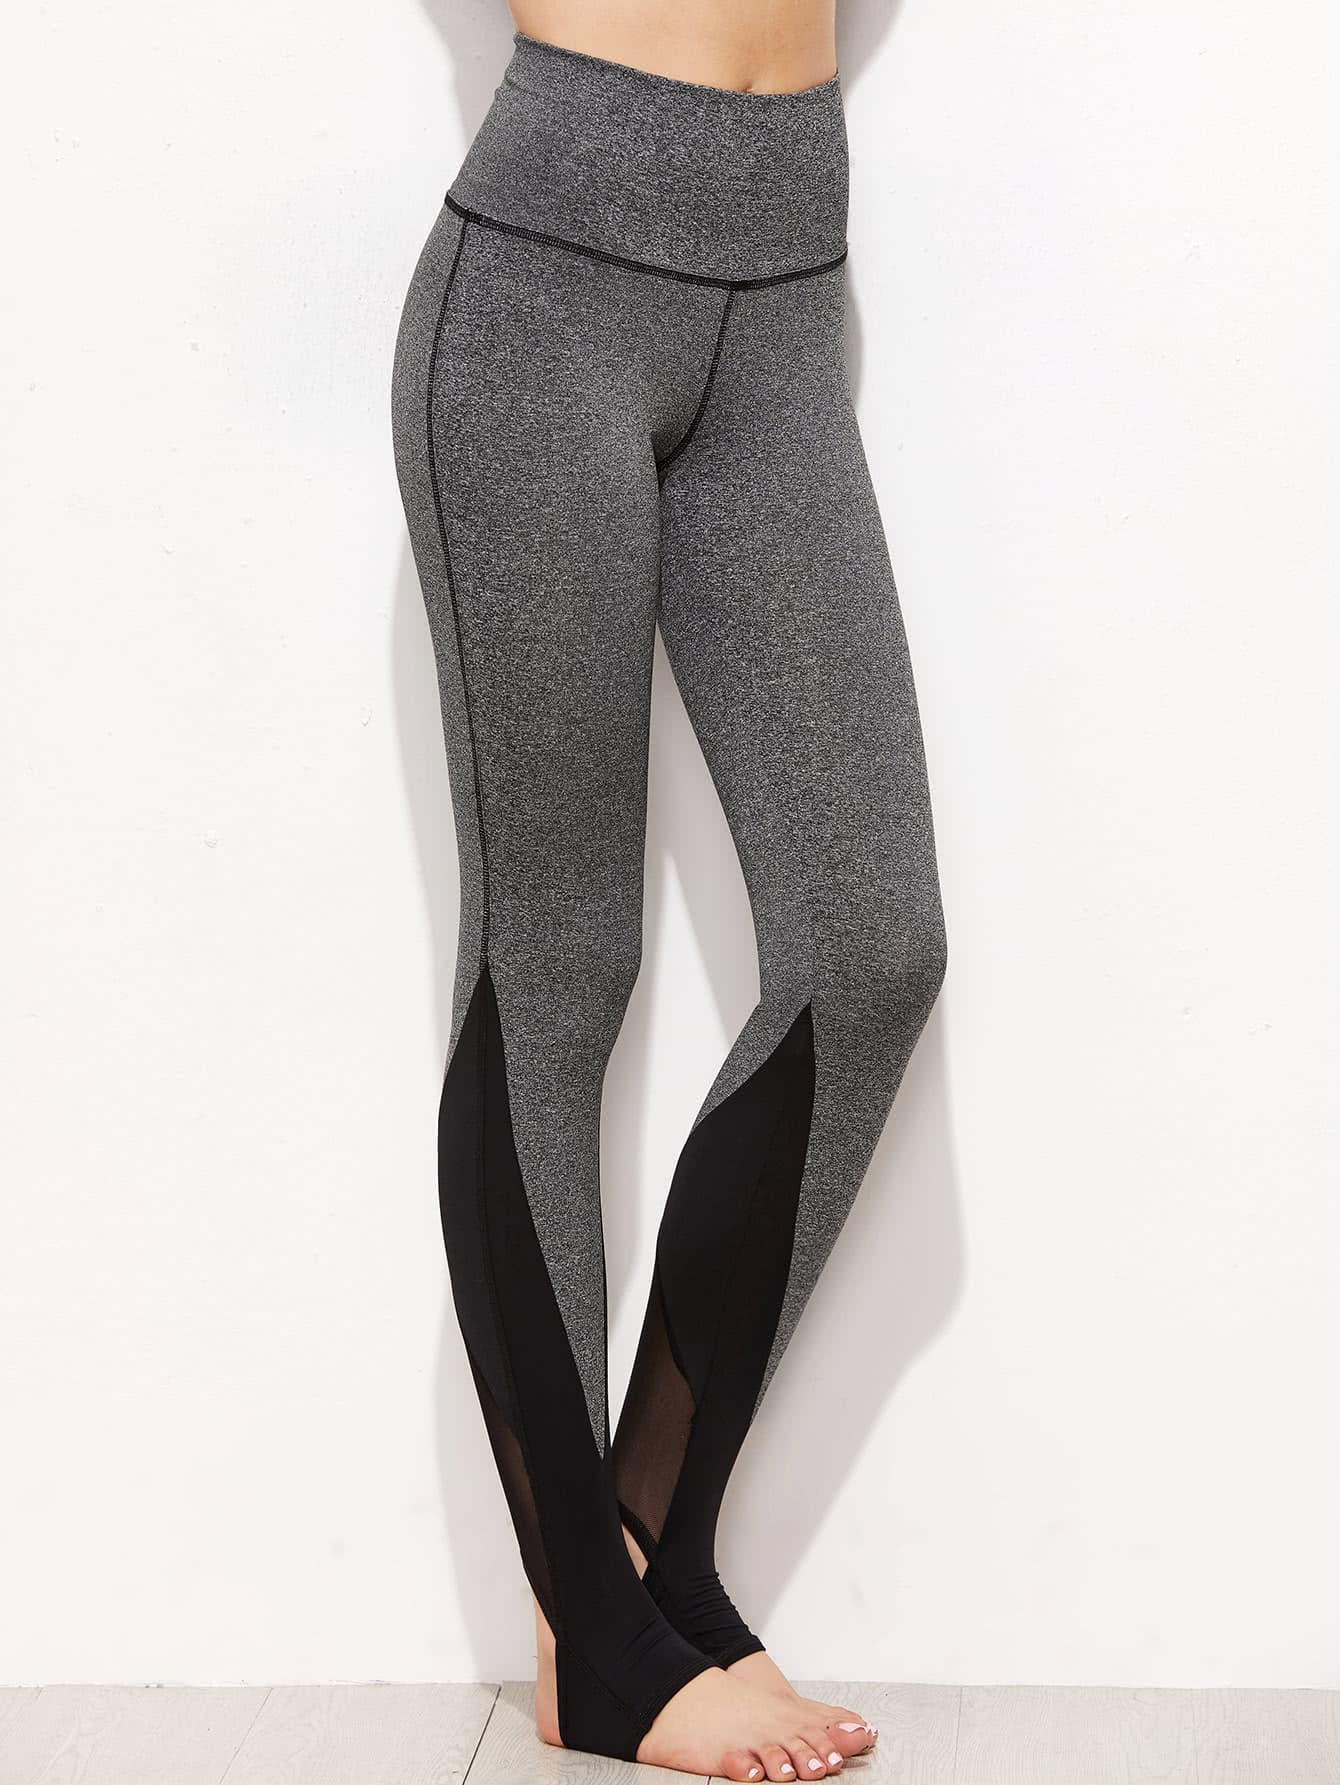 Marled Knit Mesh Panel Stirrup Leggings peacock printed yoga stirrup leggings page 3